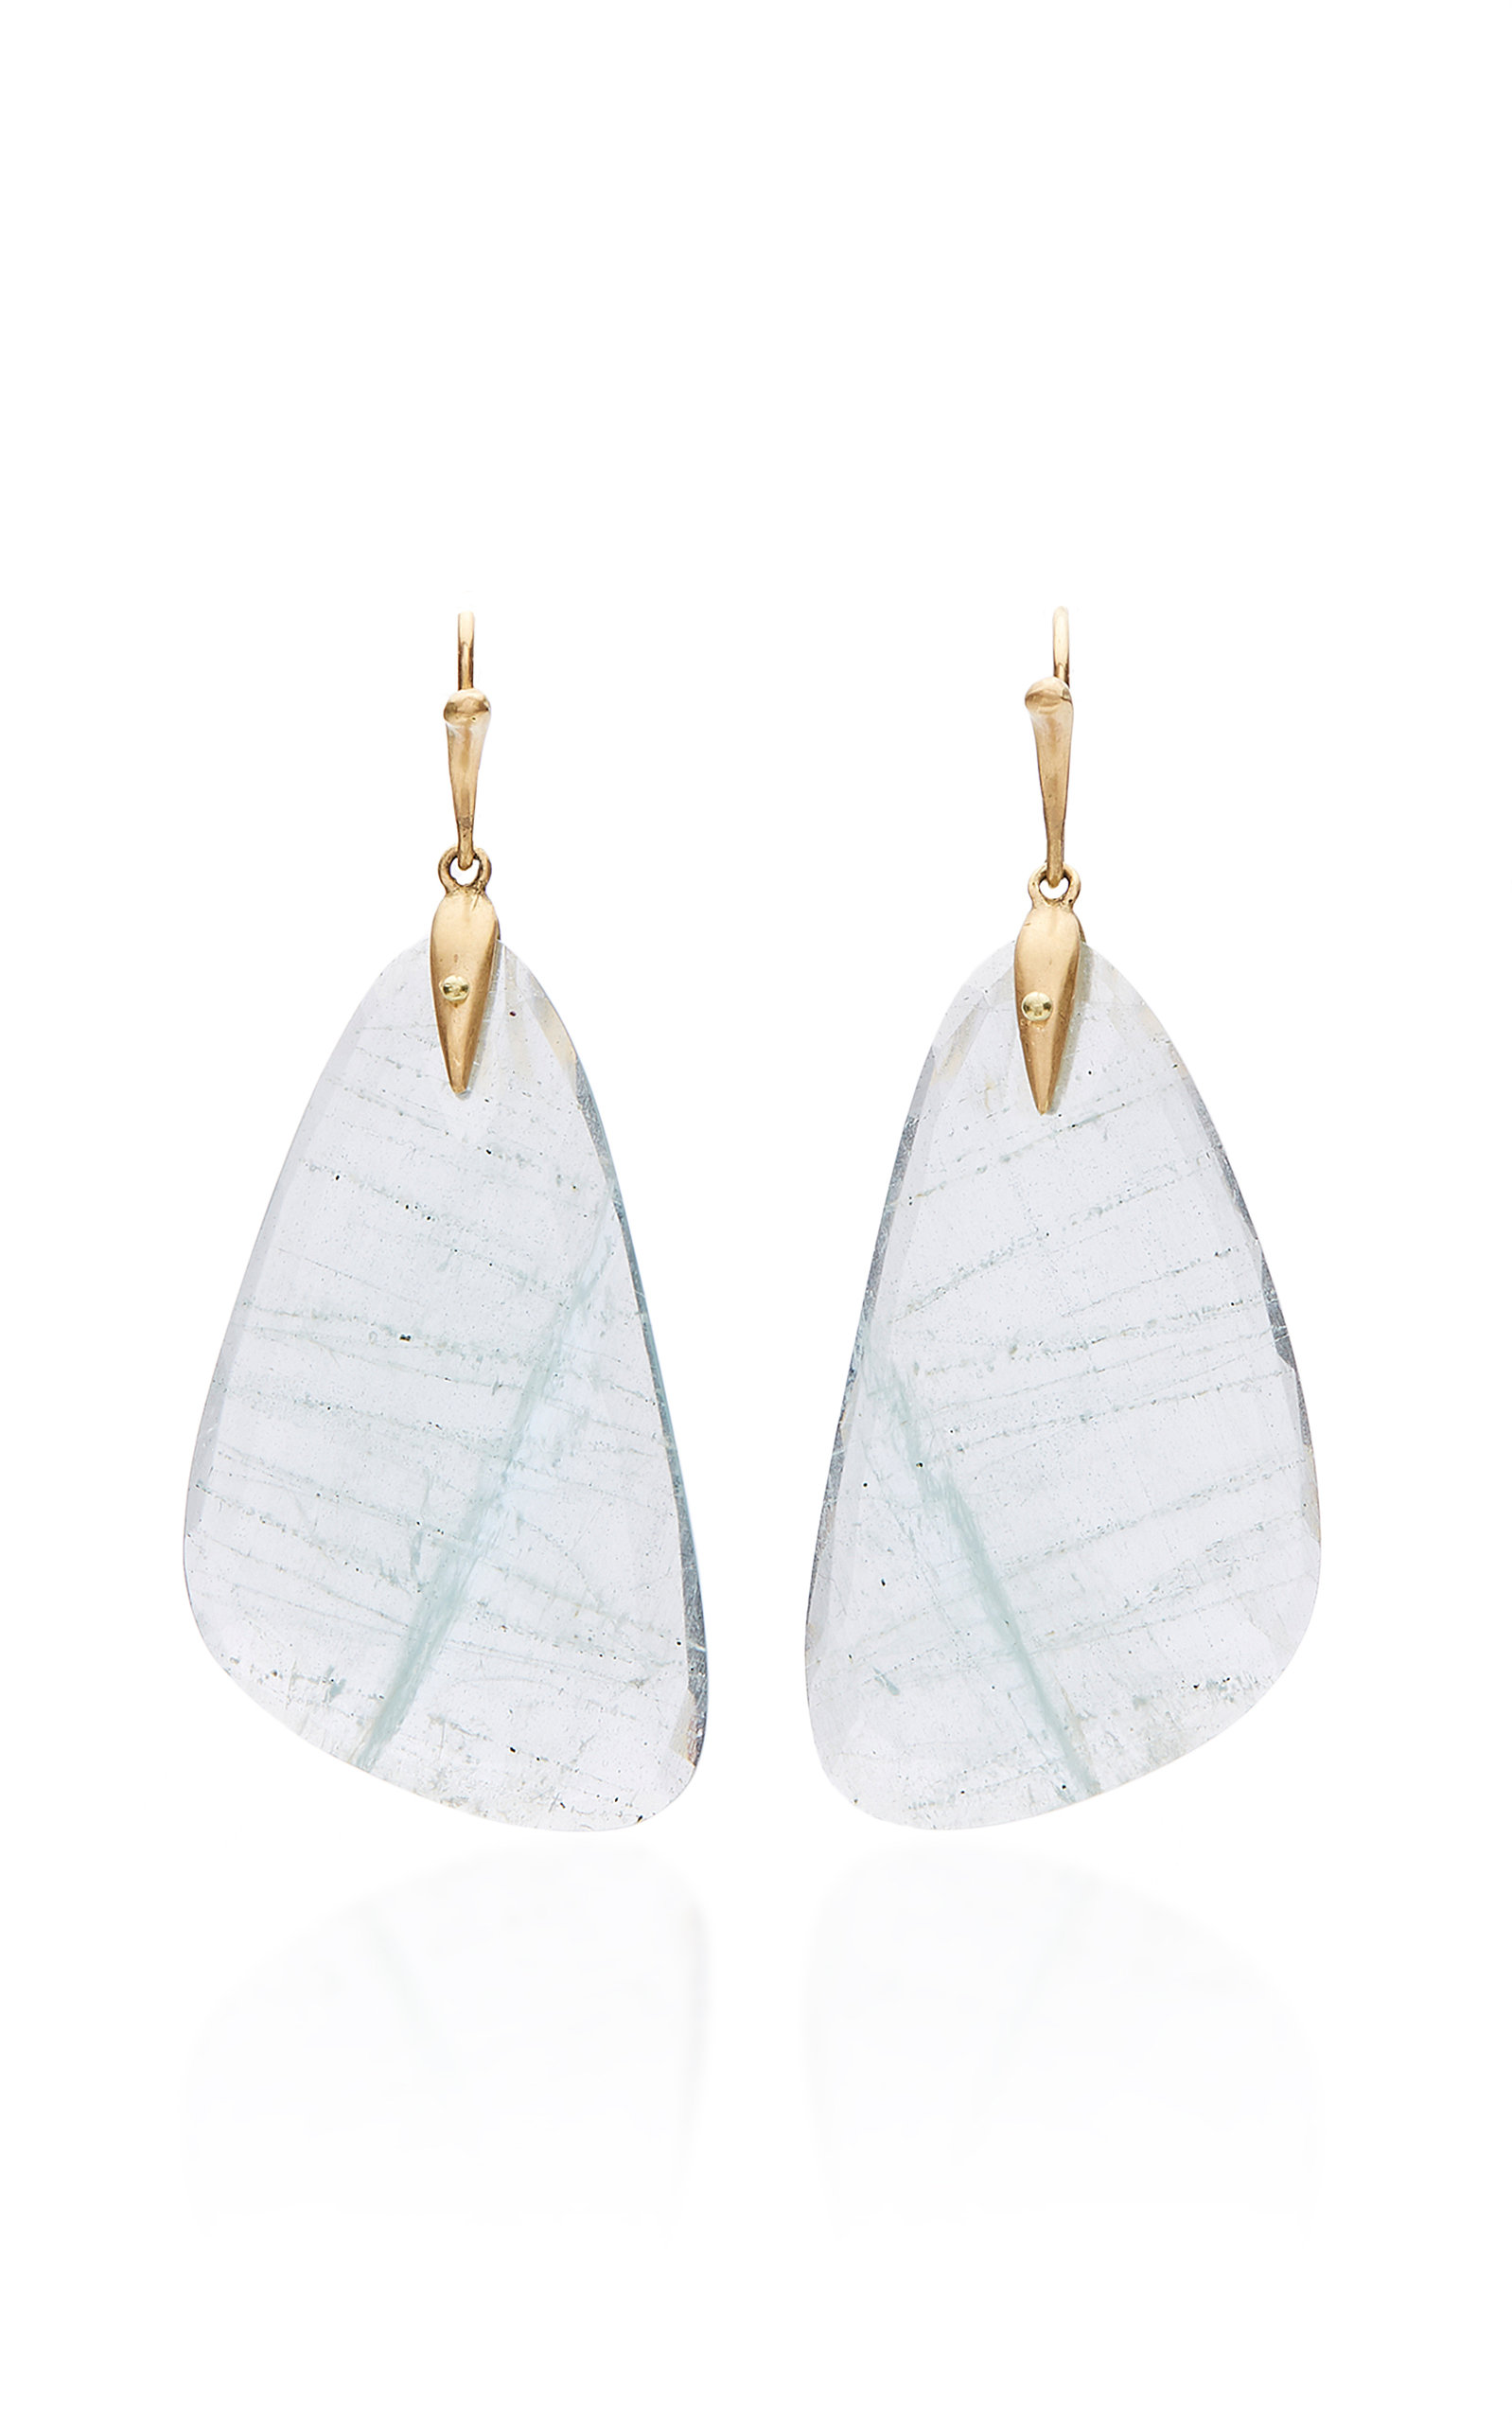 ANNETTE FERDINANDSEN M'O EXCLUSIVE: ONE-OF-A-KIND AQUAMARINE TROPICAL WING EARRINGS